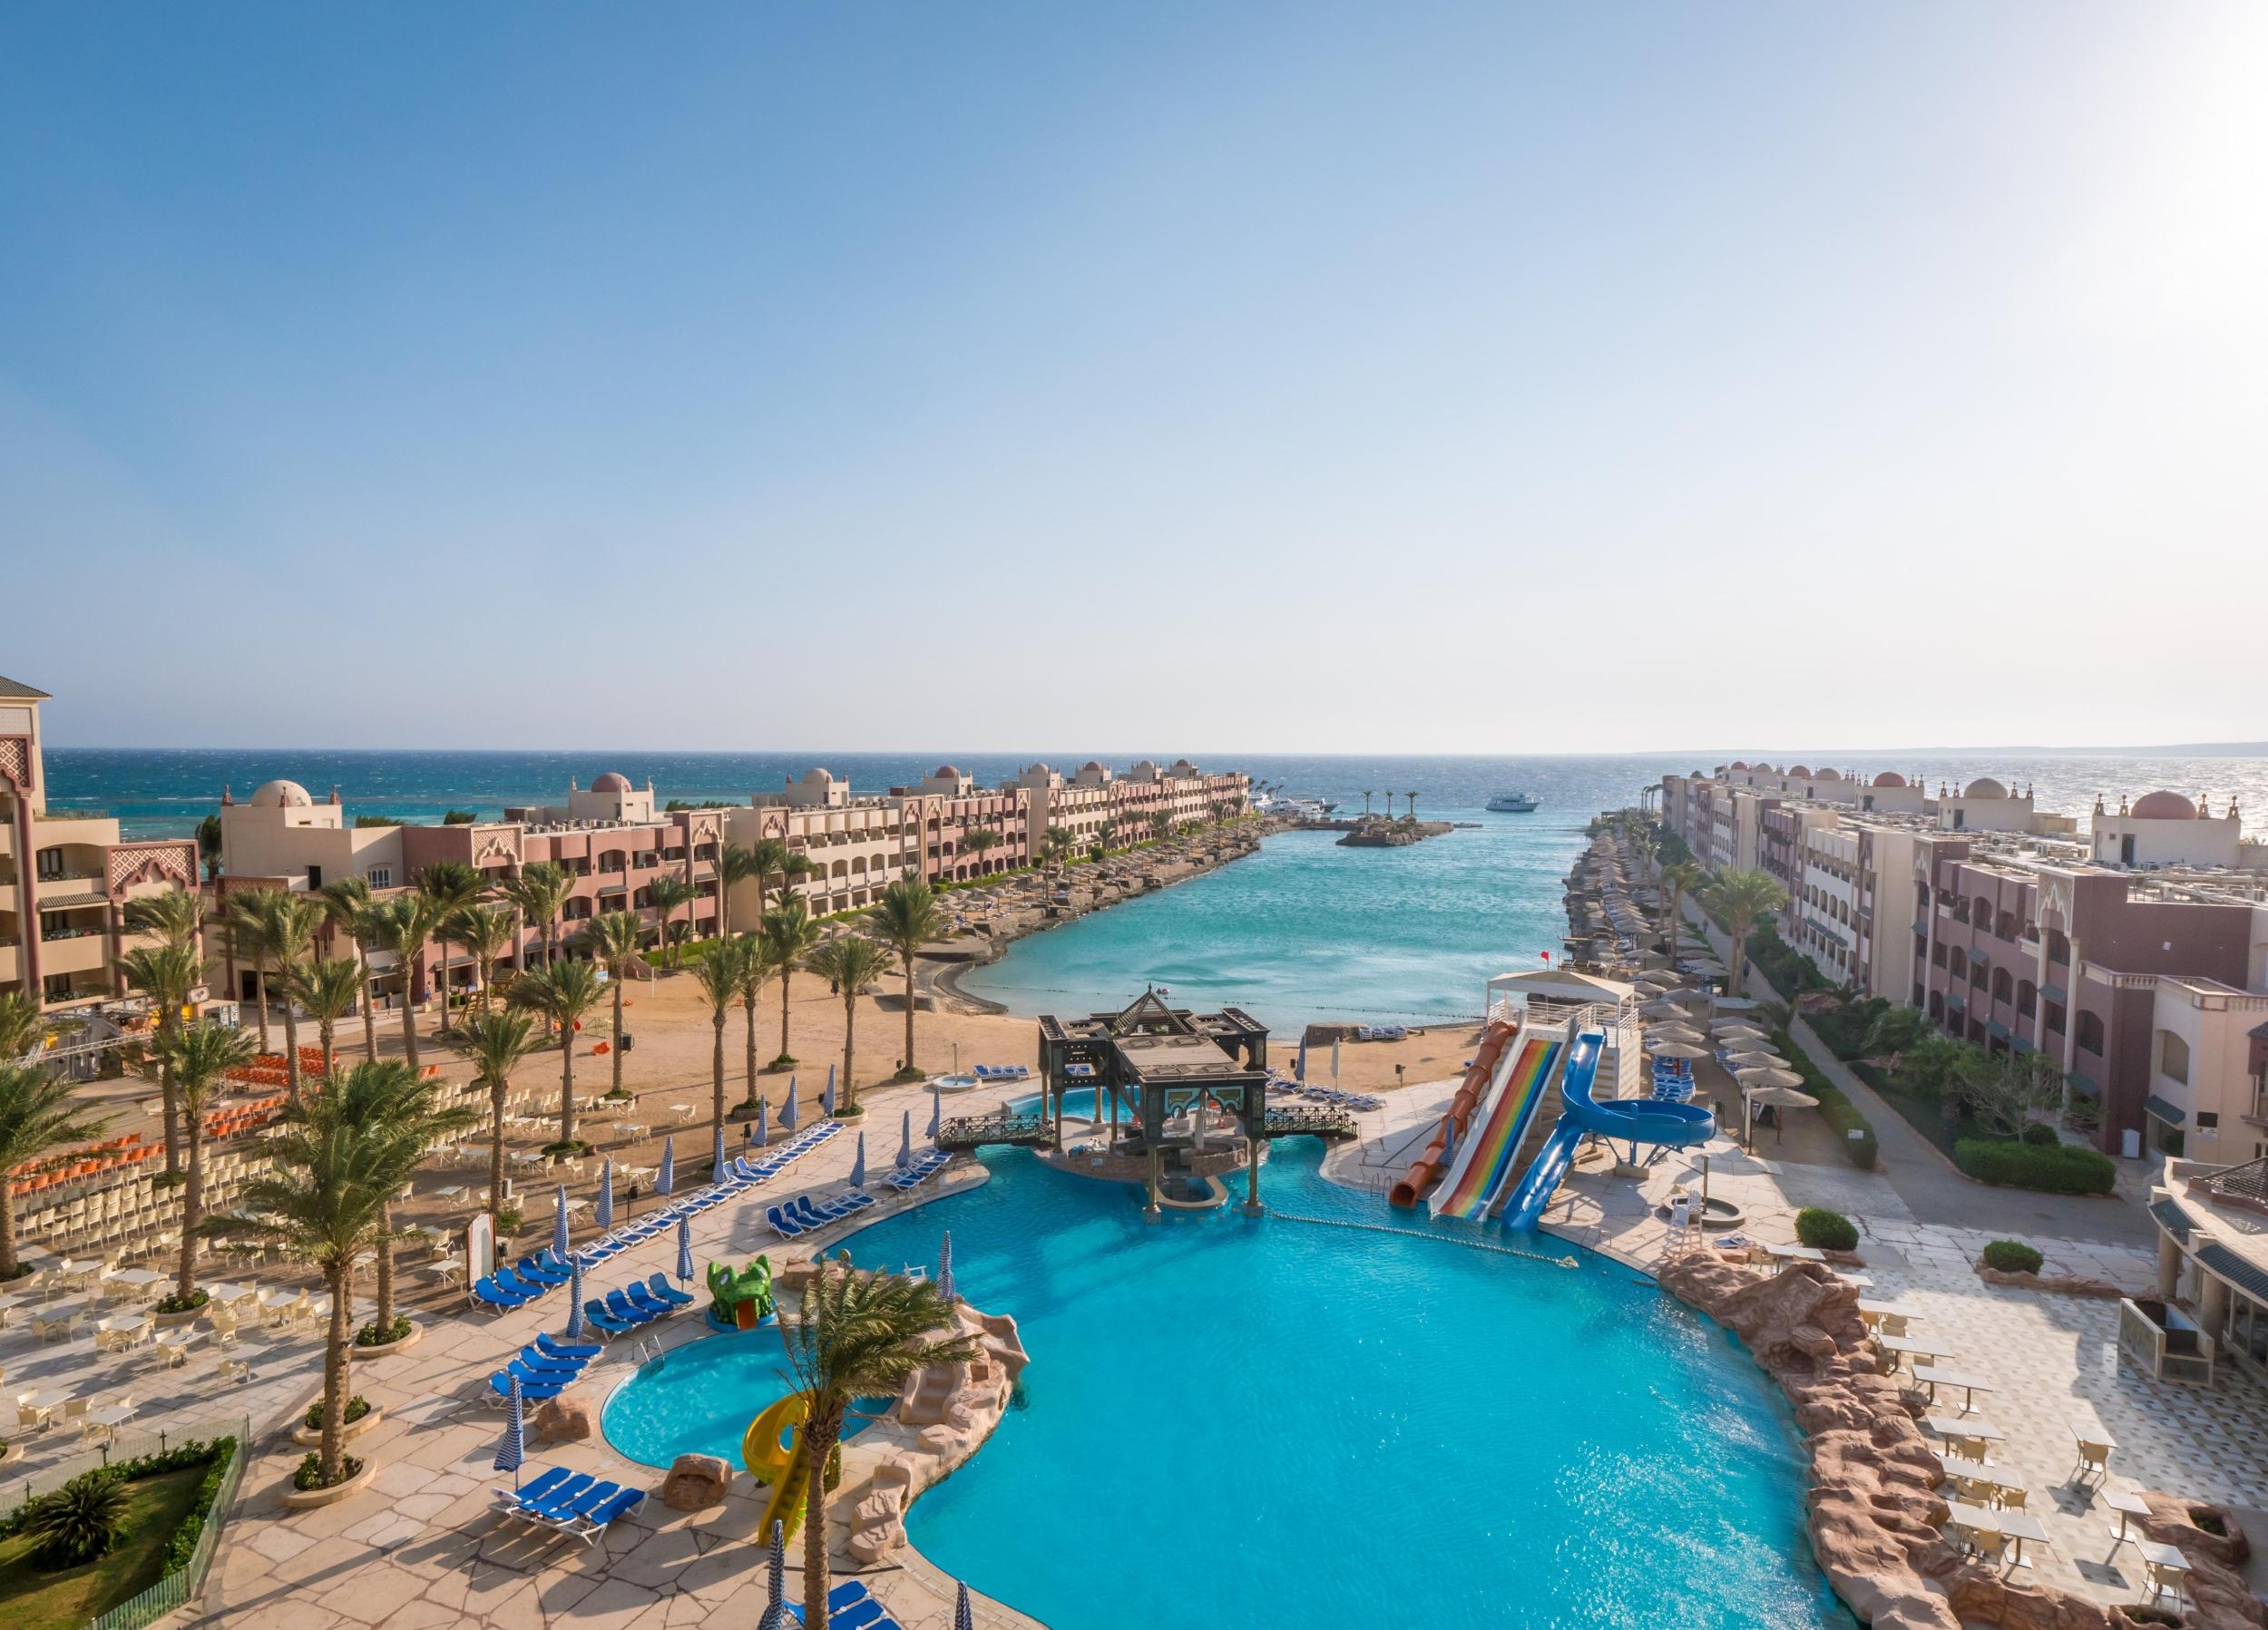 Sunny Days El Palacio Resort And SPA in Hurghada, Red Sea, Egypt